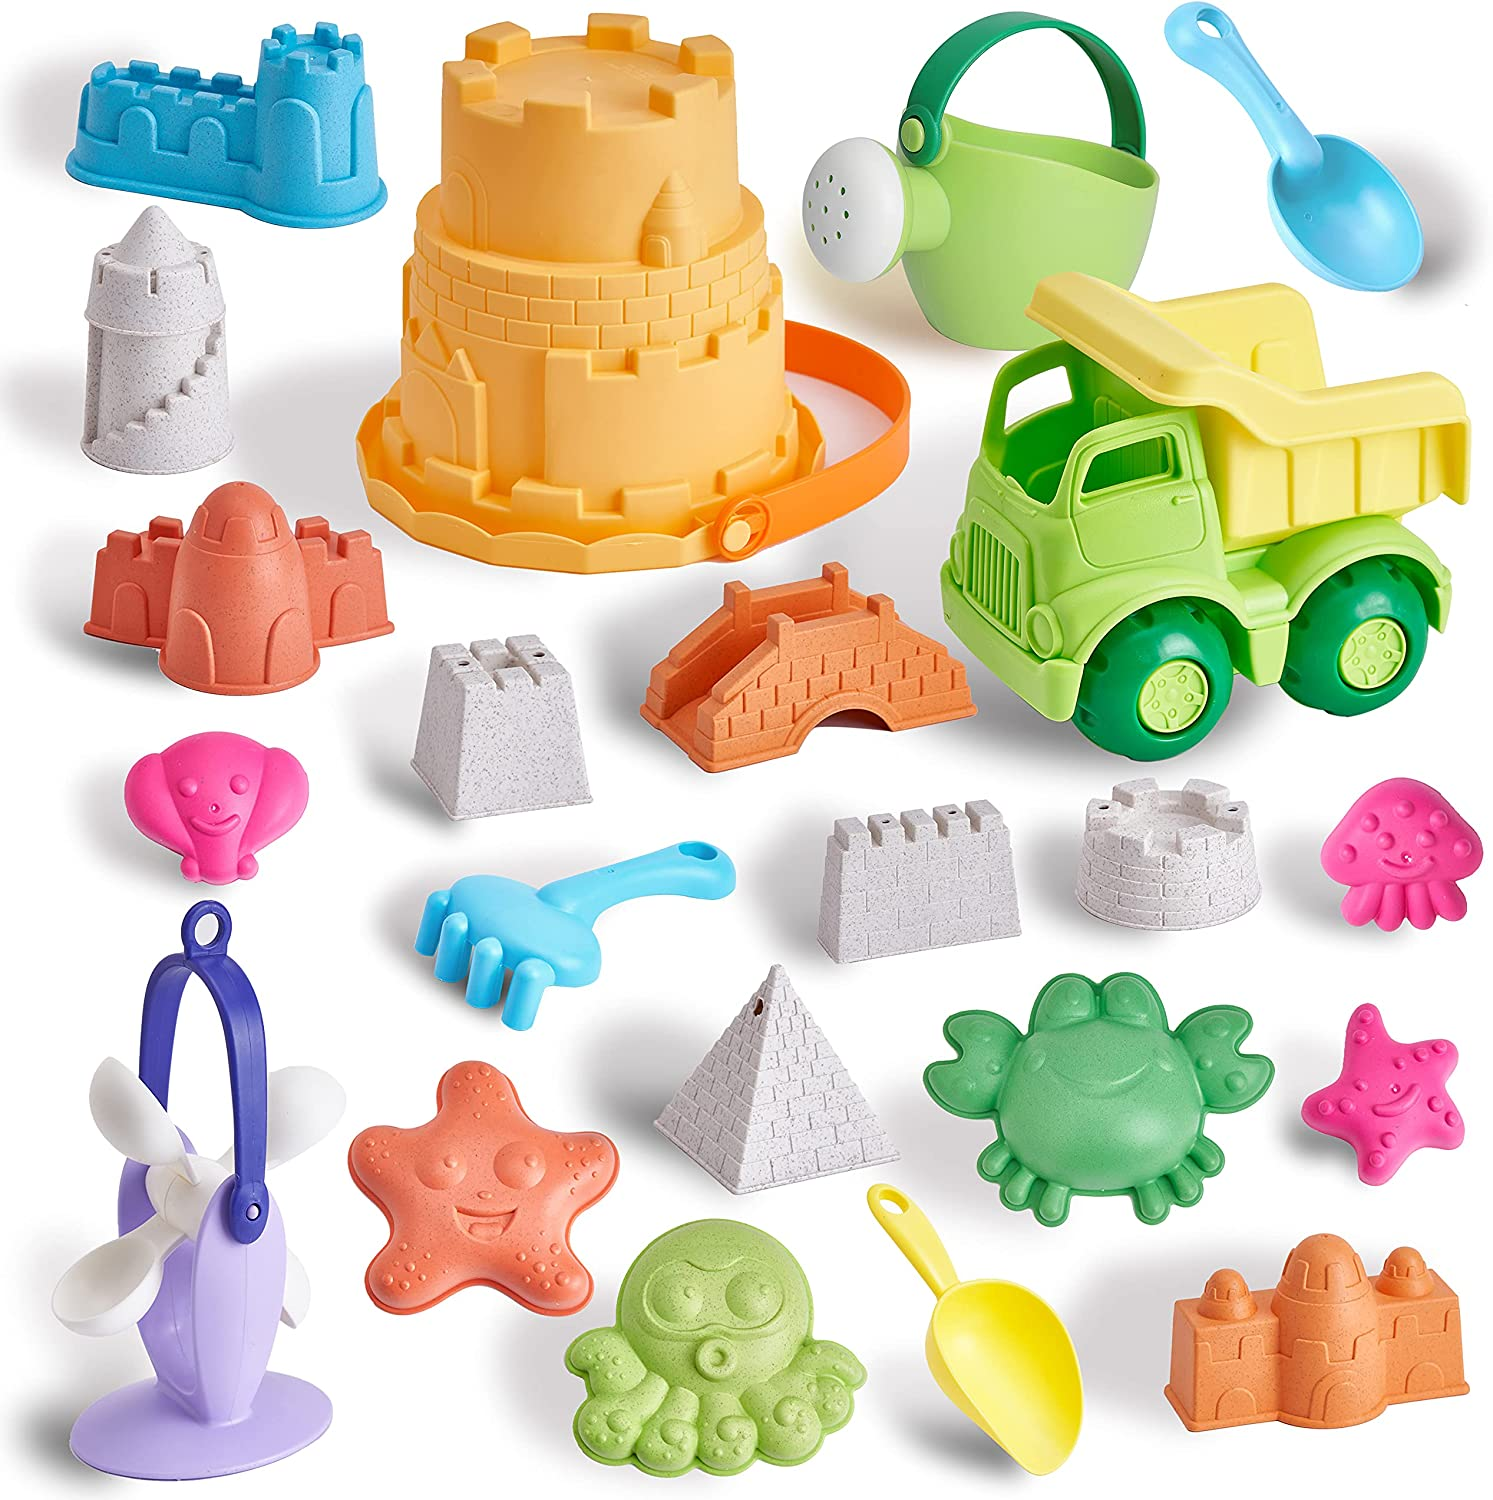 T.G.Y Beach Sand Toys 23 Pieces for Castle K Toy Free shipping Kids New Free Shipping Set